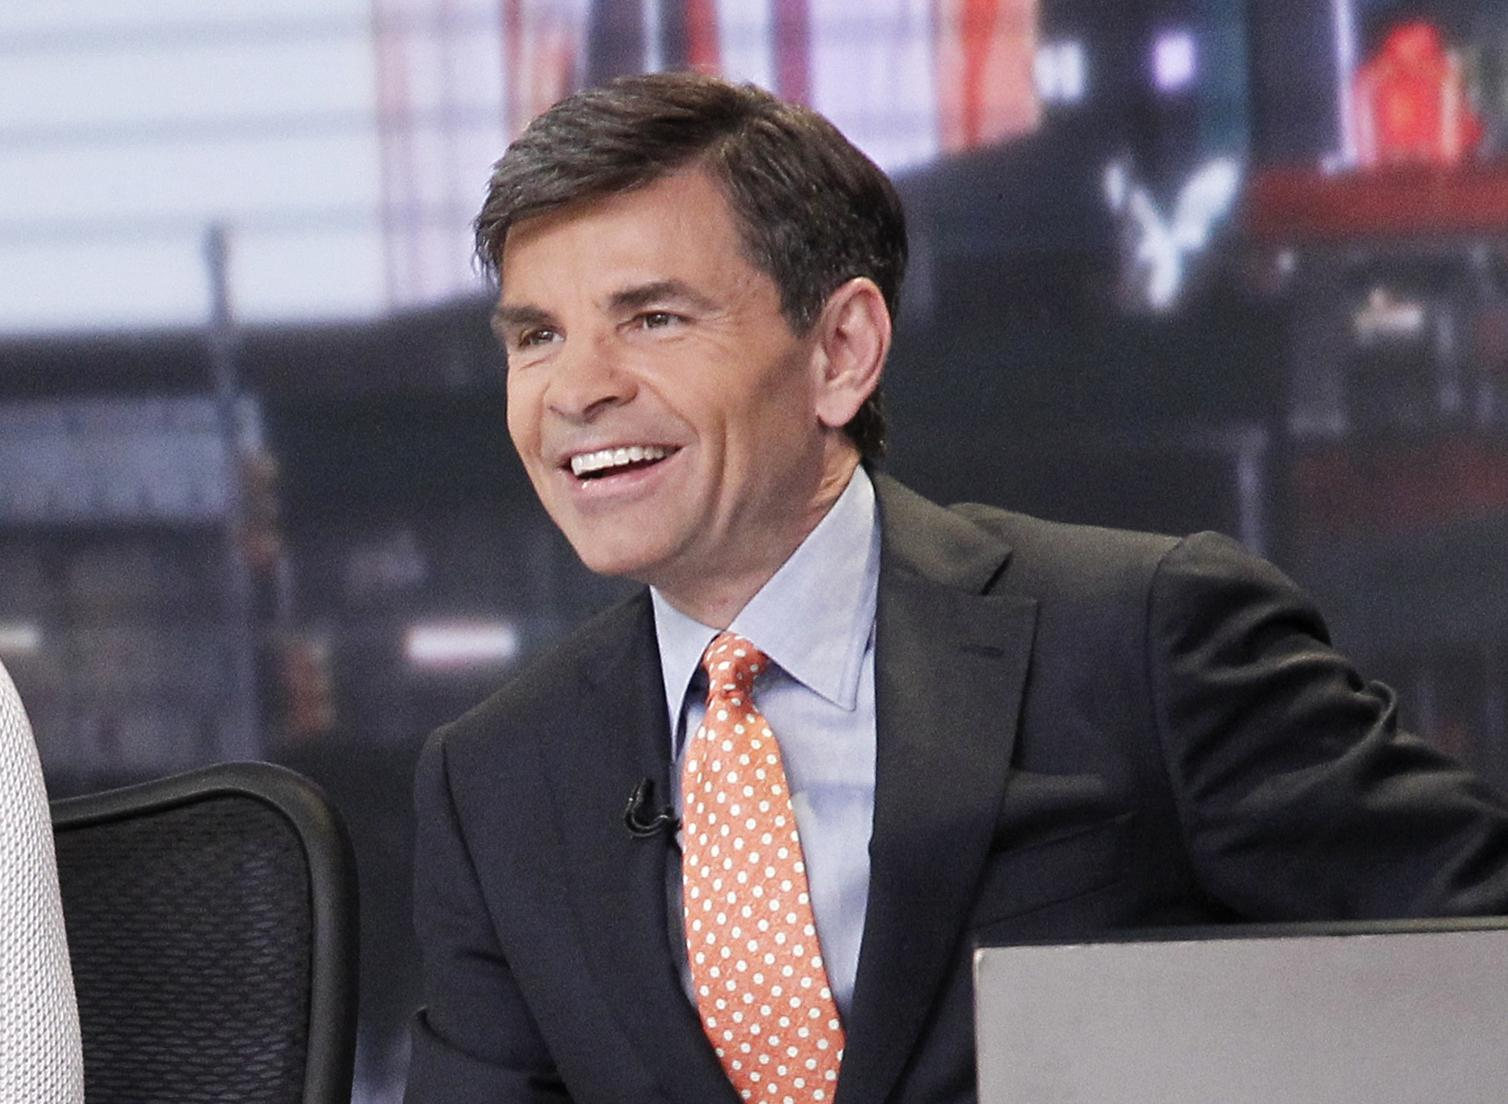 ABC News anchor George Stephanopoulos' Clinton conflicts resurface amid impeachment, Epstein